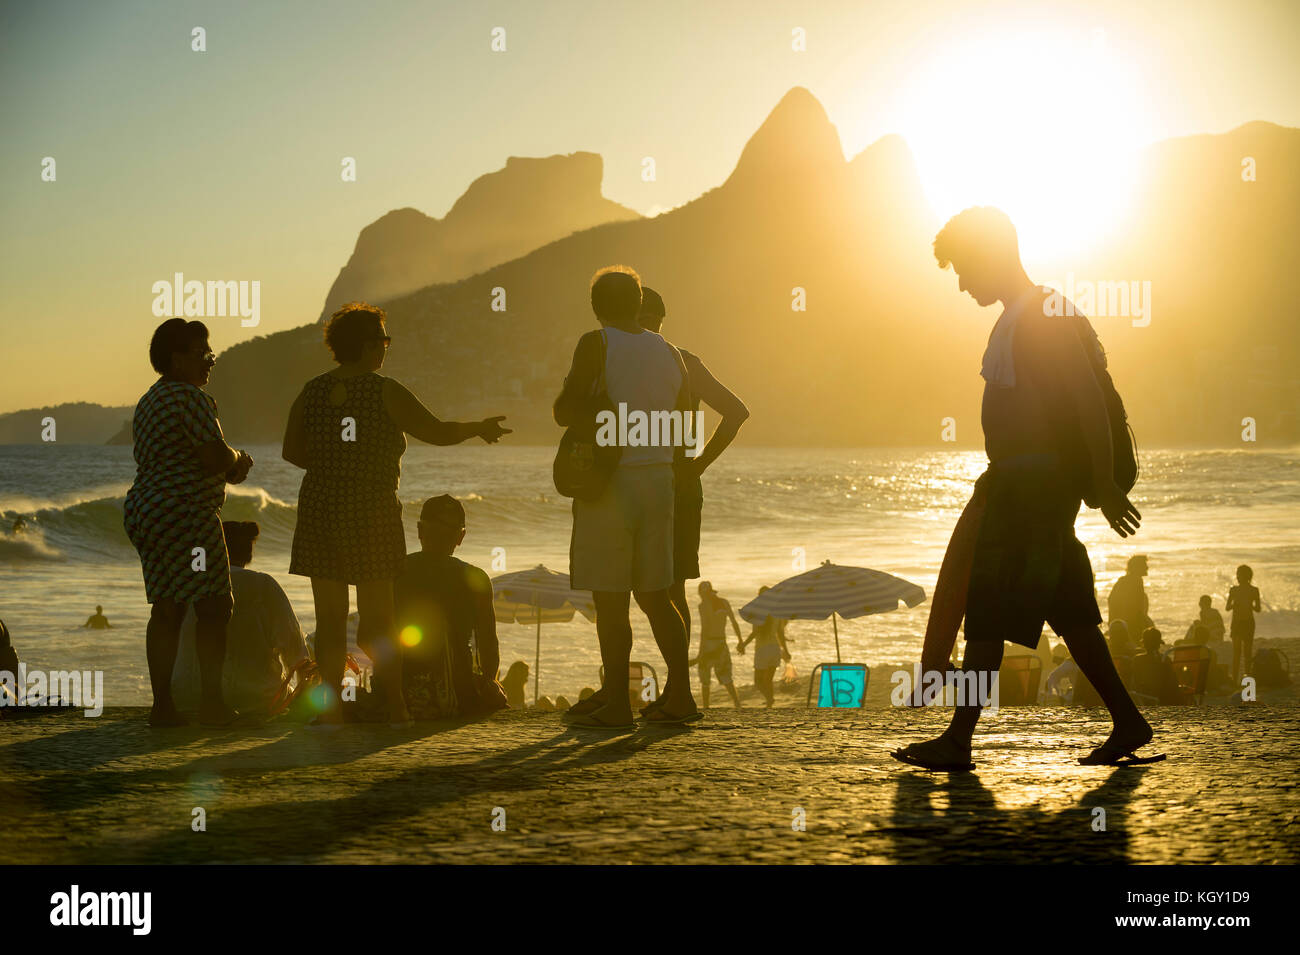 RIO DE JANEIRO - MARCH 20, 2017: People gathered watching the sunset at Arpoador, a popular summertime activity - Stock Image